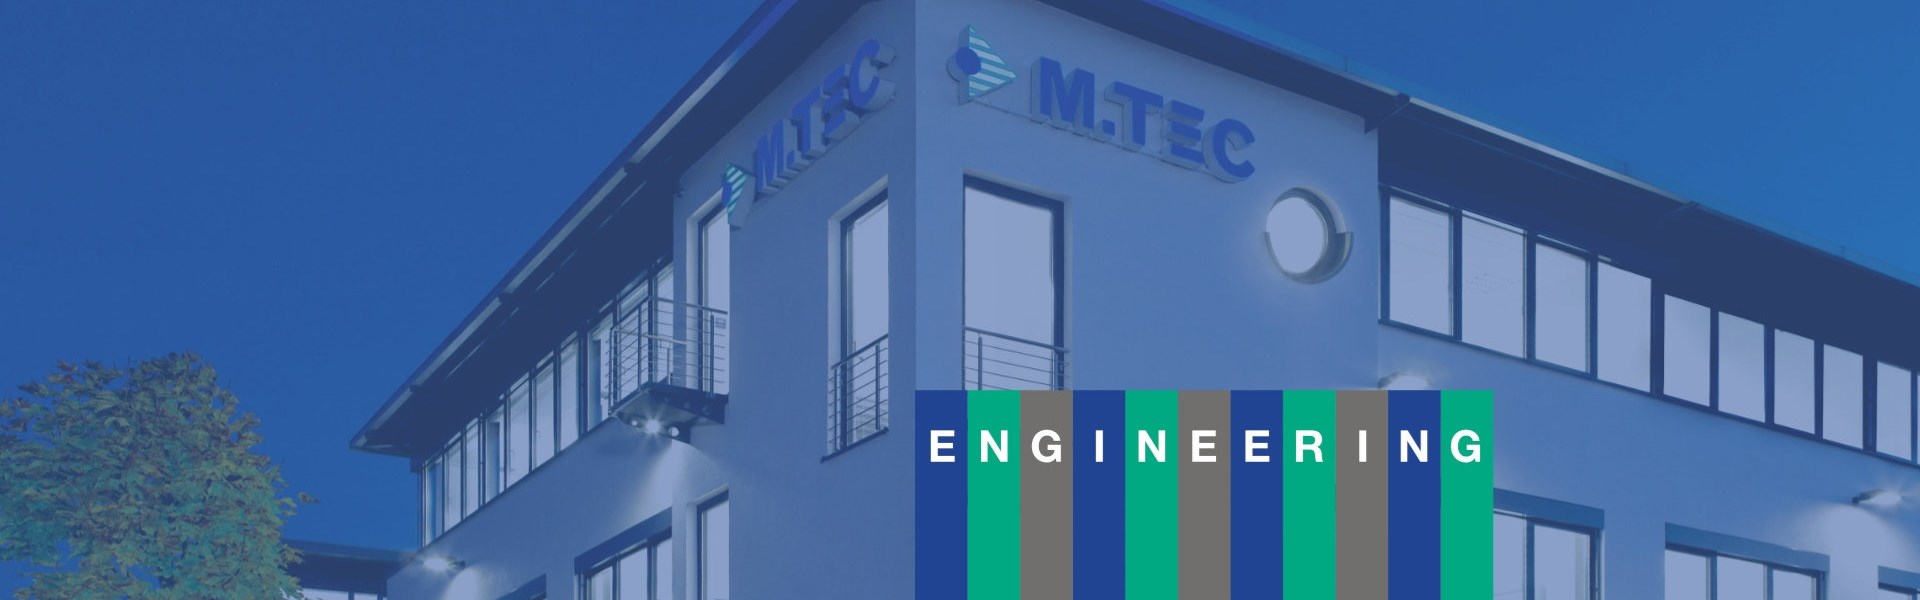 M.TEC ENGINEERING GmbH: New name reflects the company's development